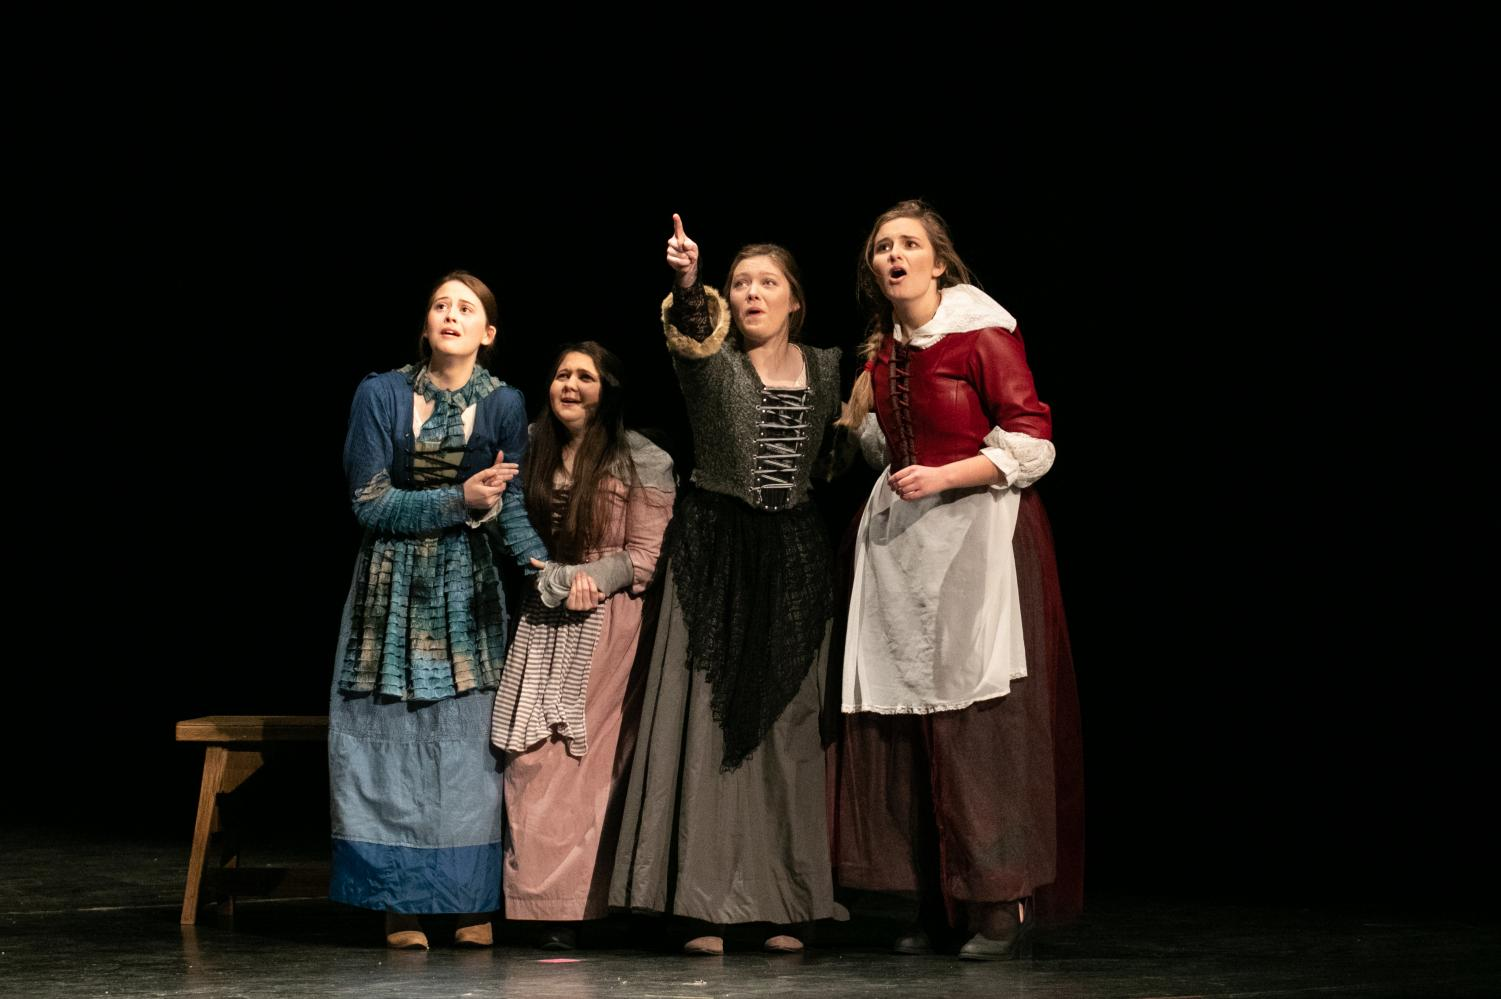 Sophomore Cate Rounds, junior Addison Cross, and seniors Rachel Johnson and Abby Cannon point and gaze offstage in horror. The Tiger Theatre Company's UIL One Act Play troupe placed second at the district meet on Tuesday.